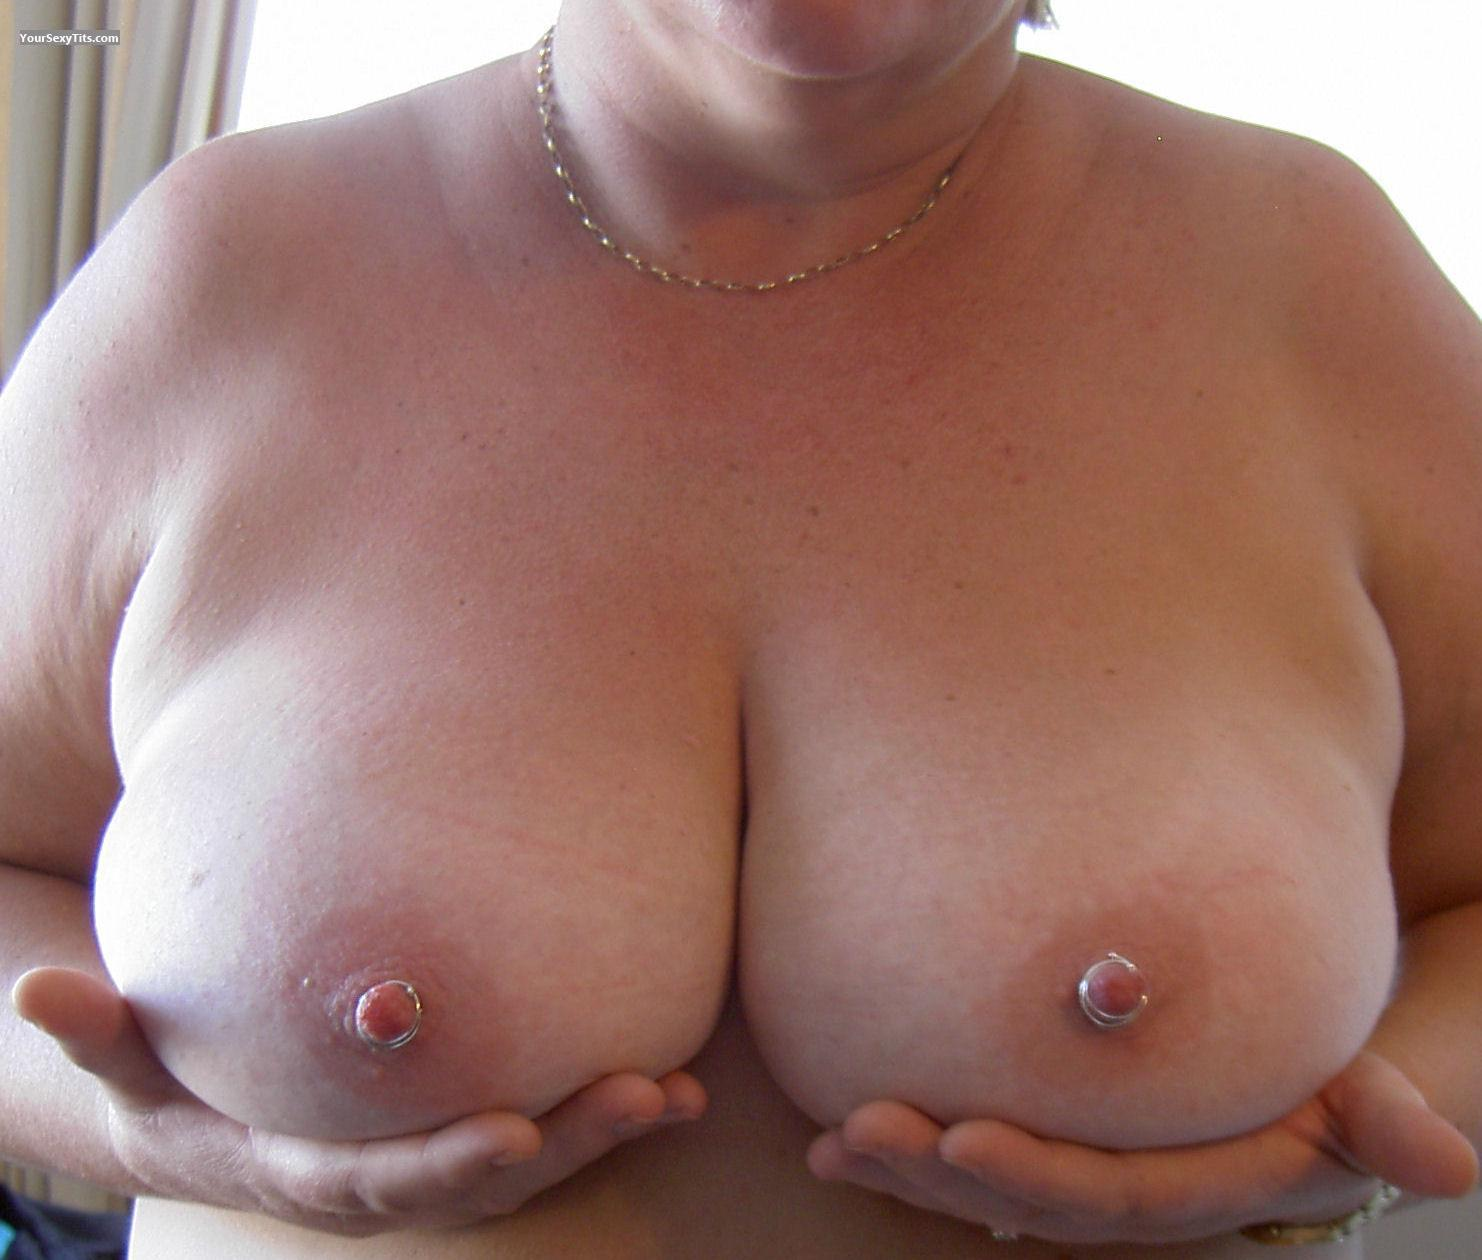 Tit Flash: Very Big Tits - Lou from South Africa